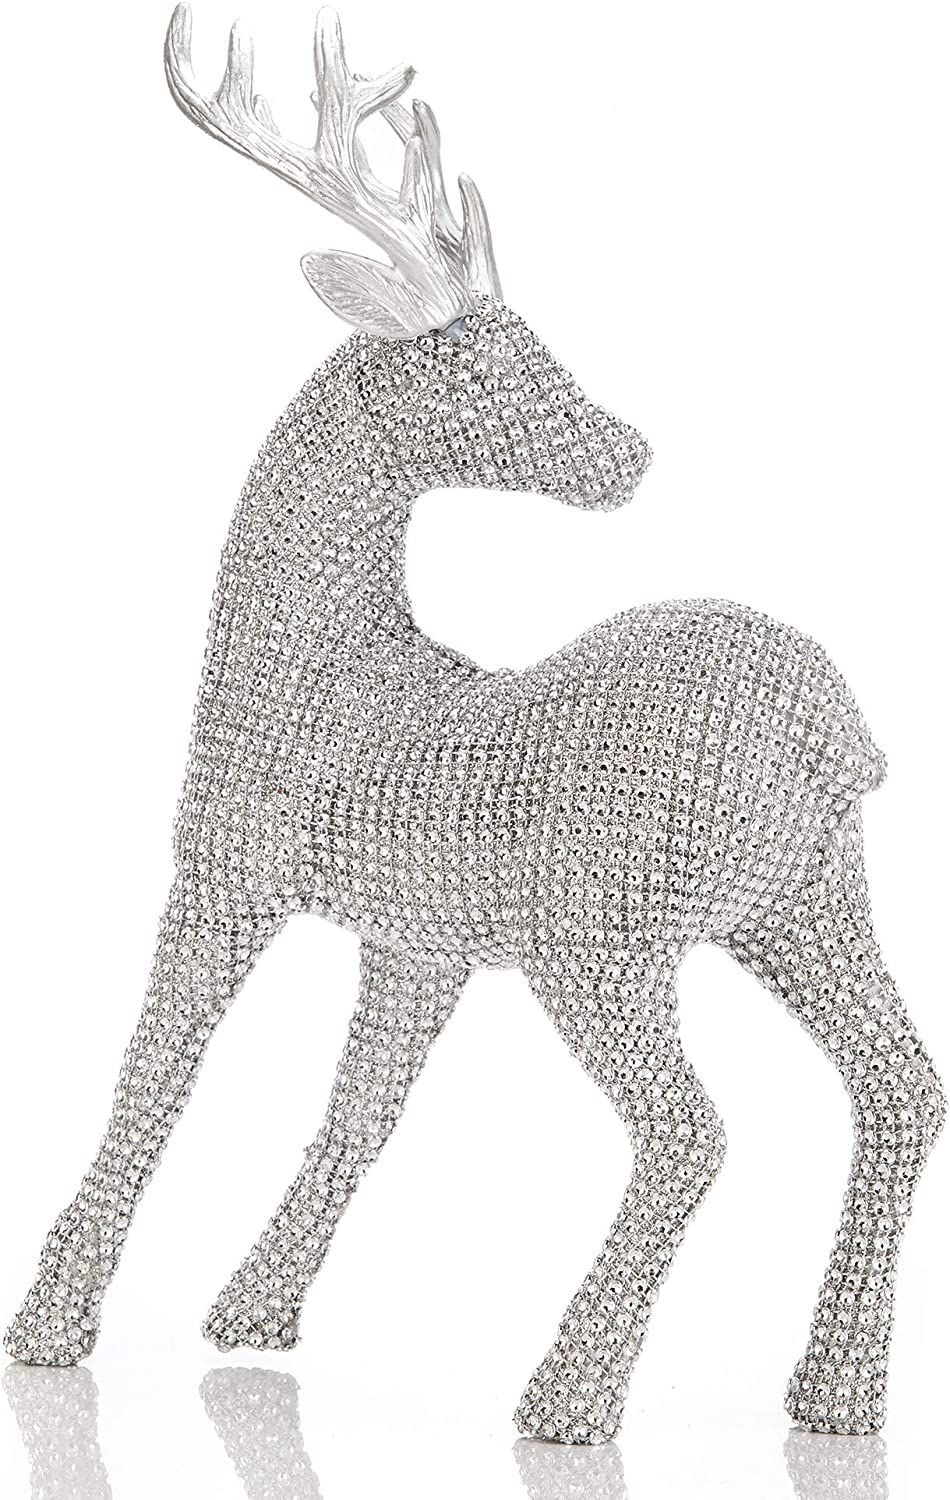 iPEGTOP Glitter Shiny Christmas Reindeer Holiday Figurine, 18 inch Large Table Desk Christmas Standing Deer Home Office Decor Statues Party Supplies, Silver